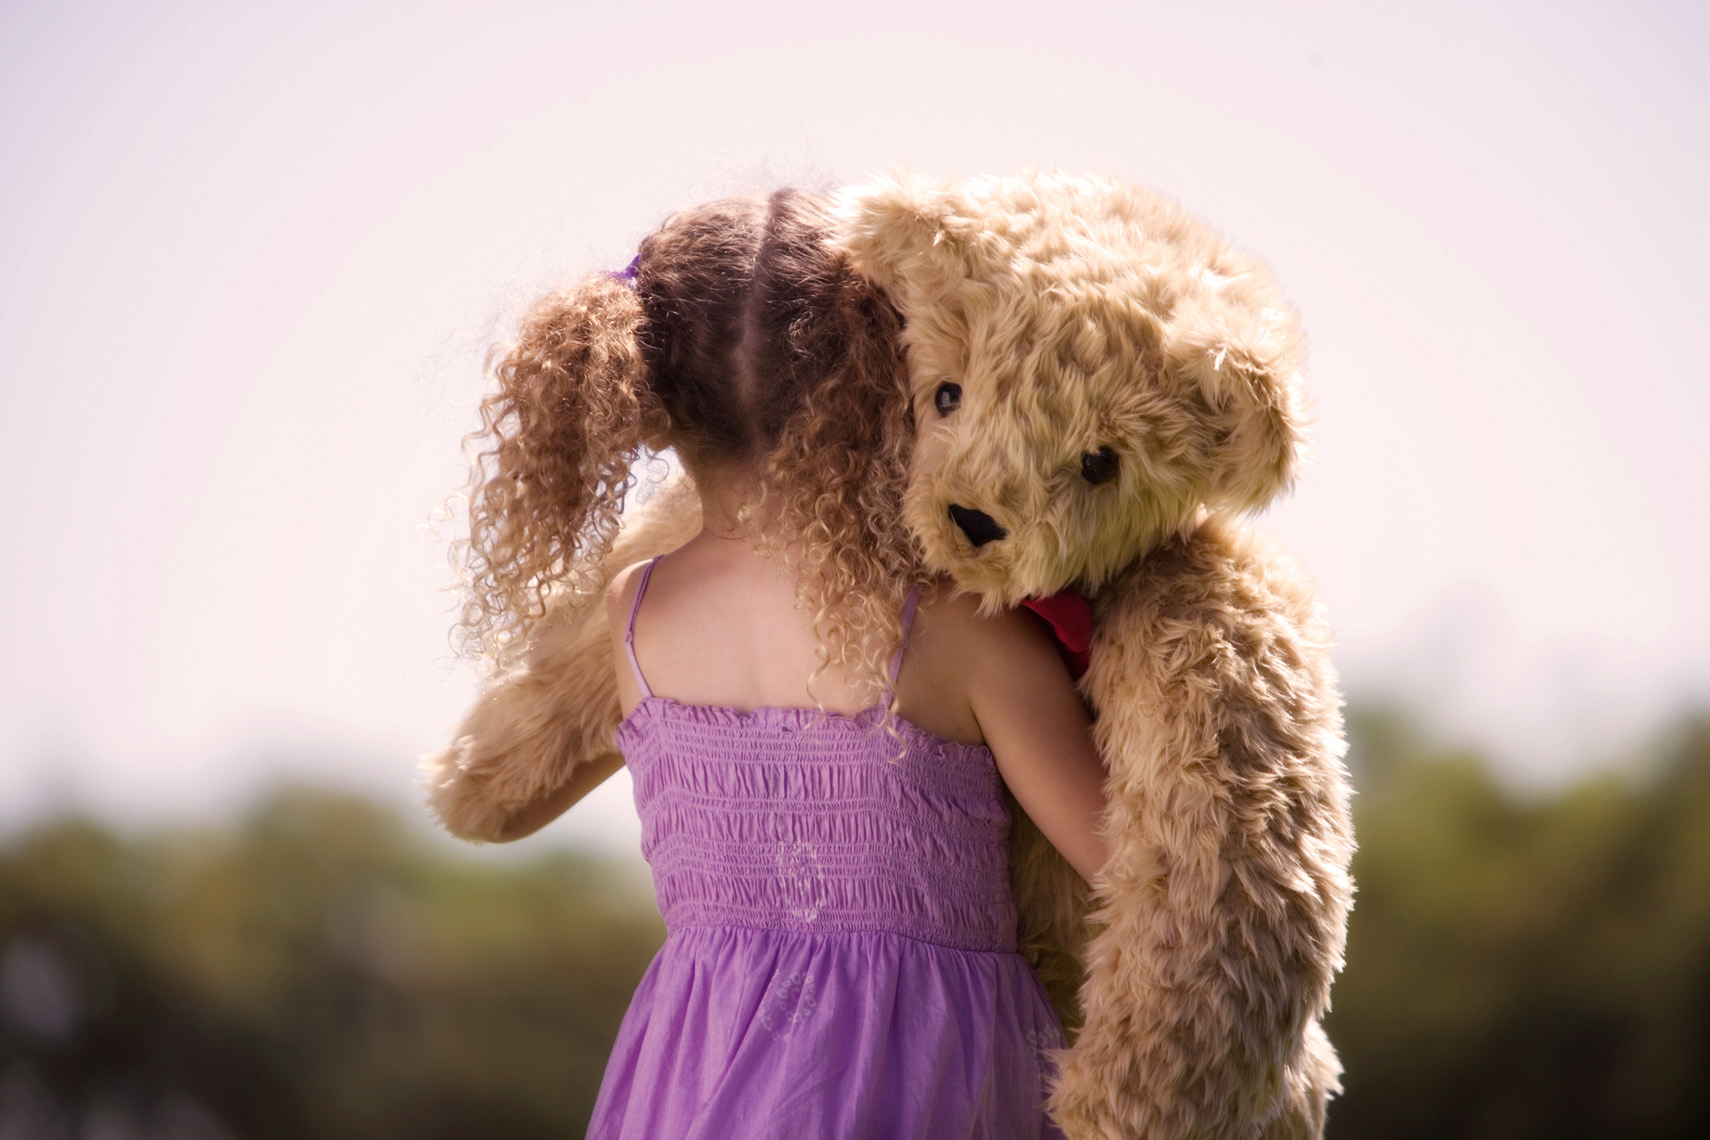 WEB_8.4_05_Girl-with-Teddy-Bear